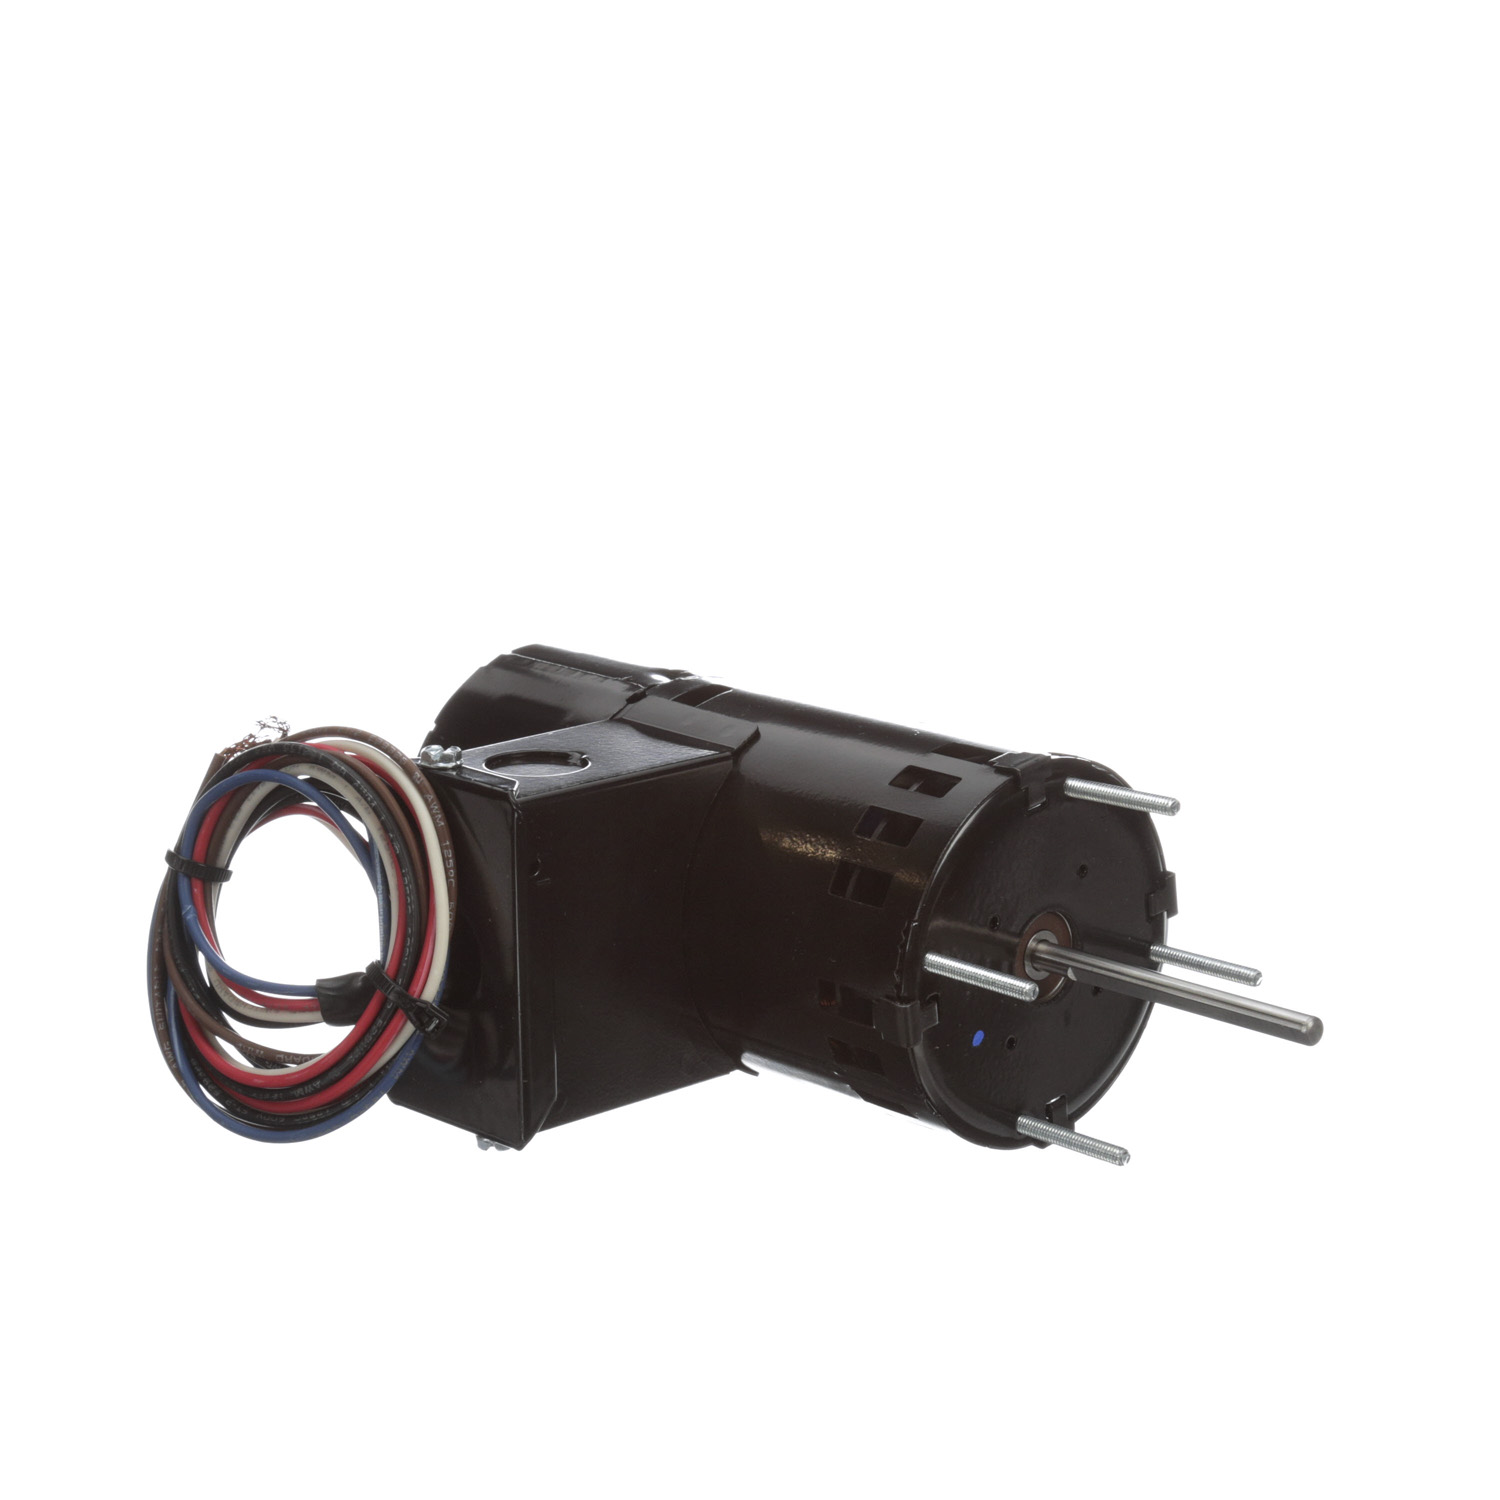 Fasco 1/15 HP Draft Inducer 115/230 Volts 3000 RPM Replaces